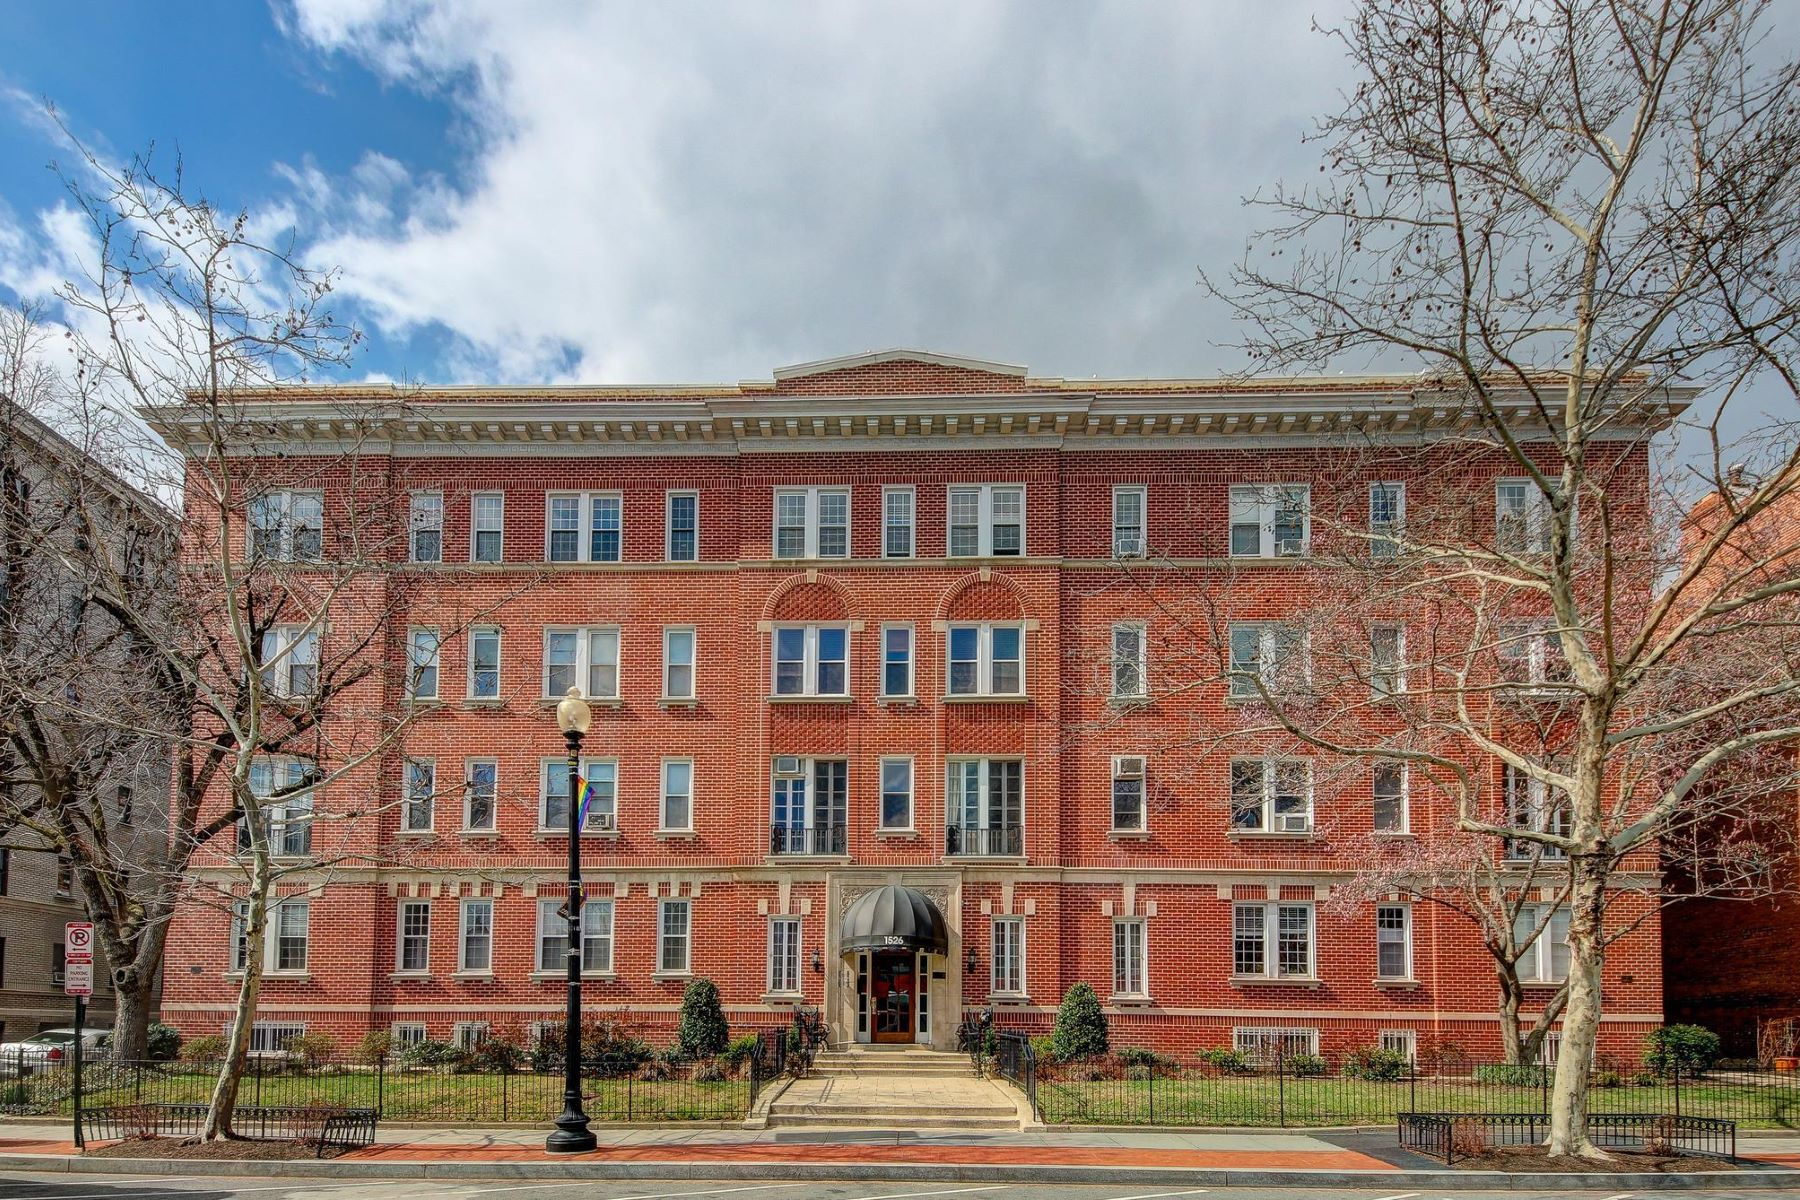 Co-op for Sale at 1526 17th St Nw #218-219 1526 17th St Nw #218-219 Washington, District Of Columbia 20036 United States